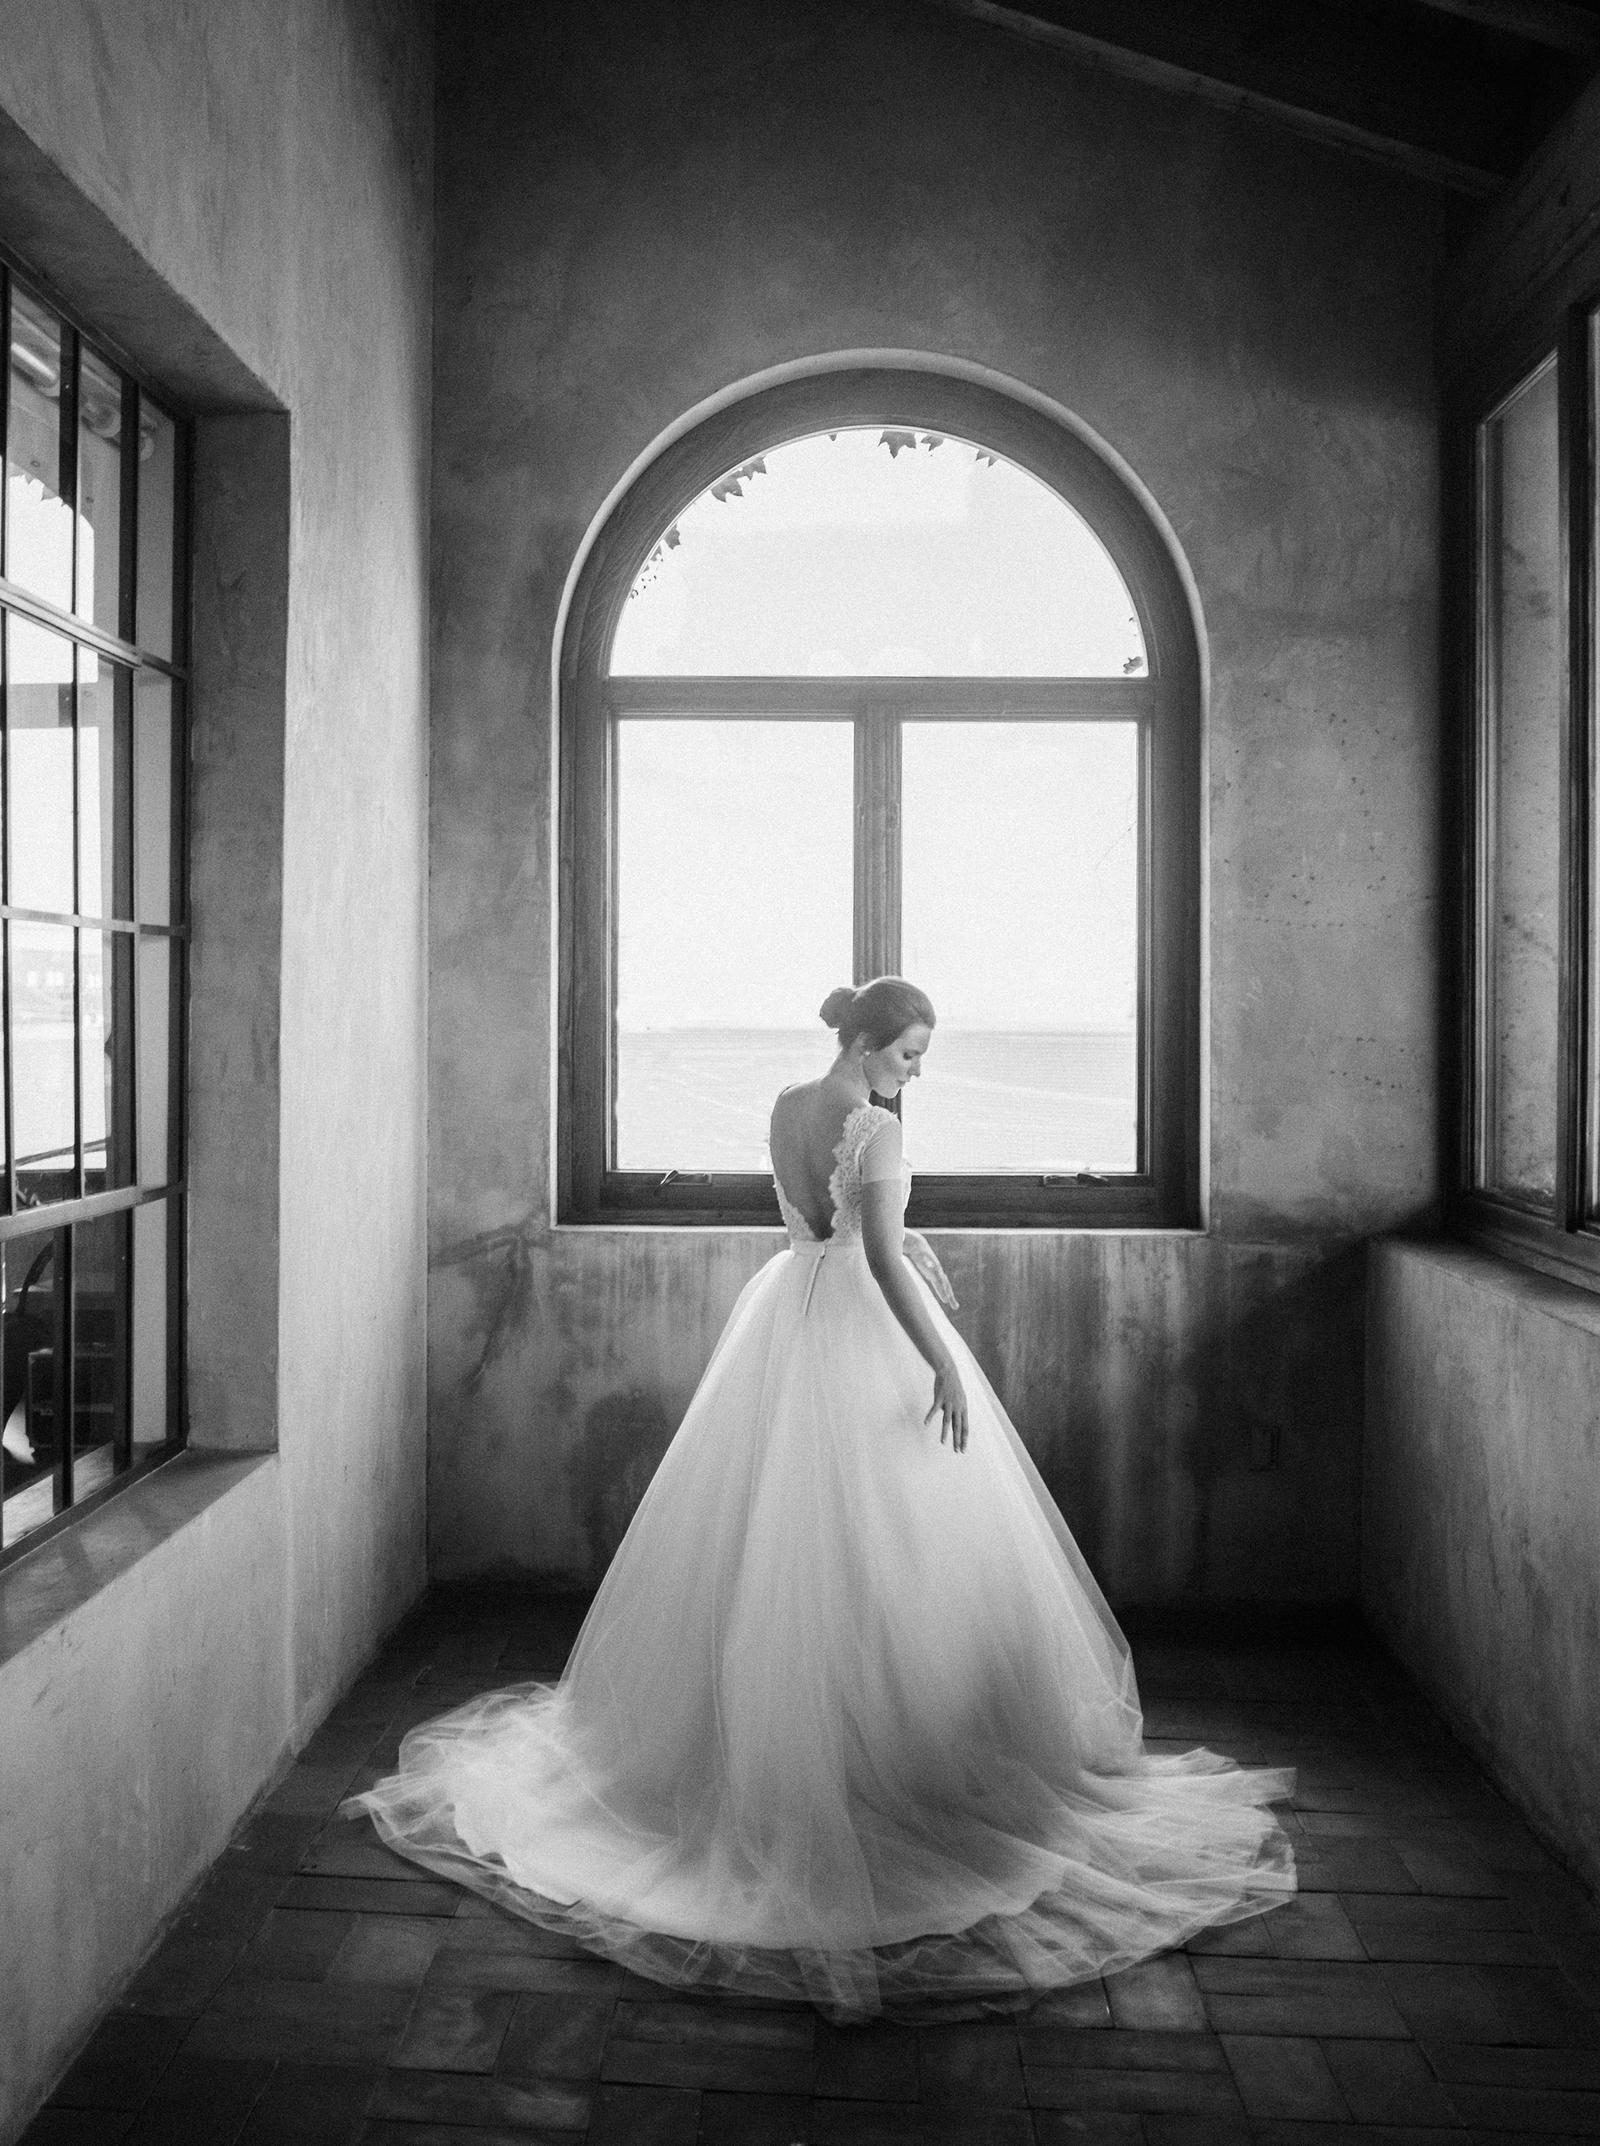 Wedding Photography | A bride stands in an alcove in front of a window.